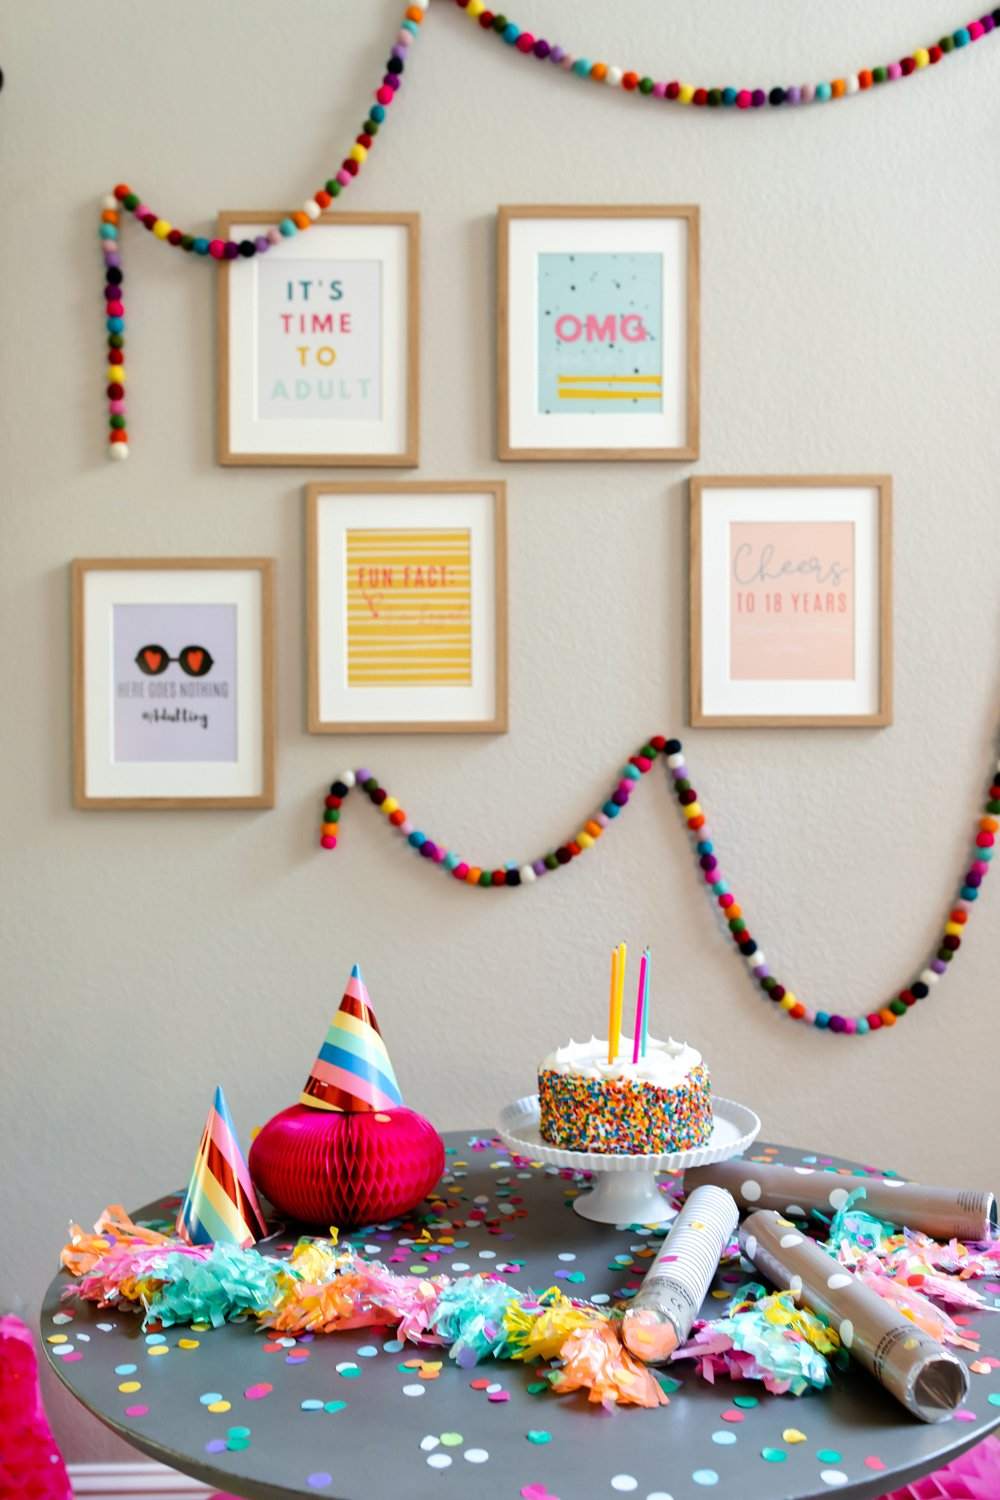 18th birthday party decor, turning 18 images